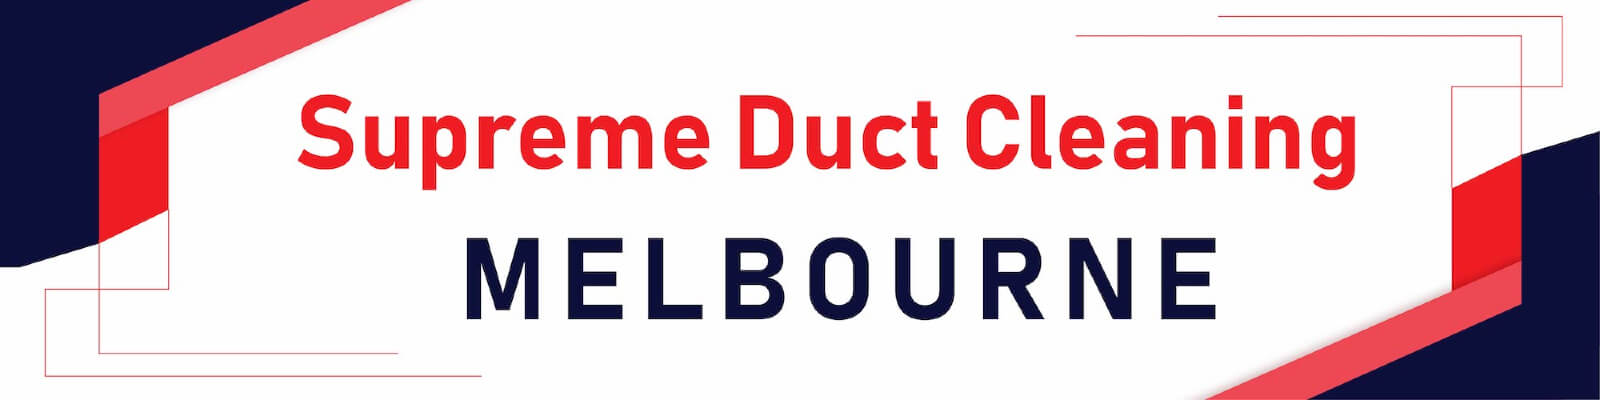 Supreme Duct Cleaning in Melbourne